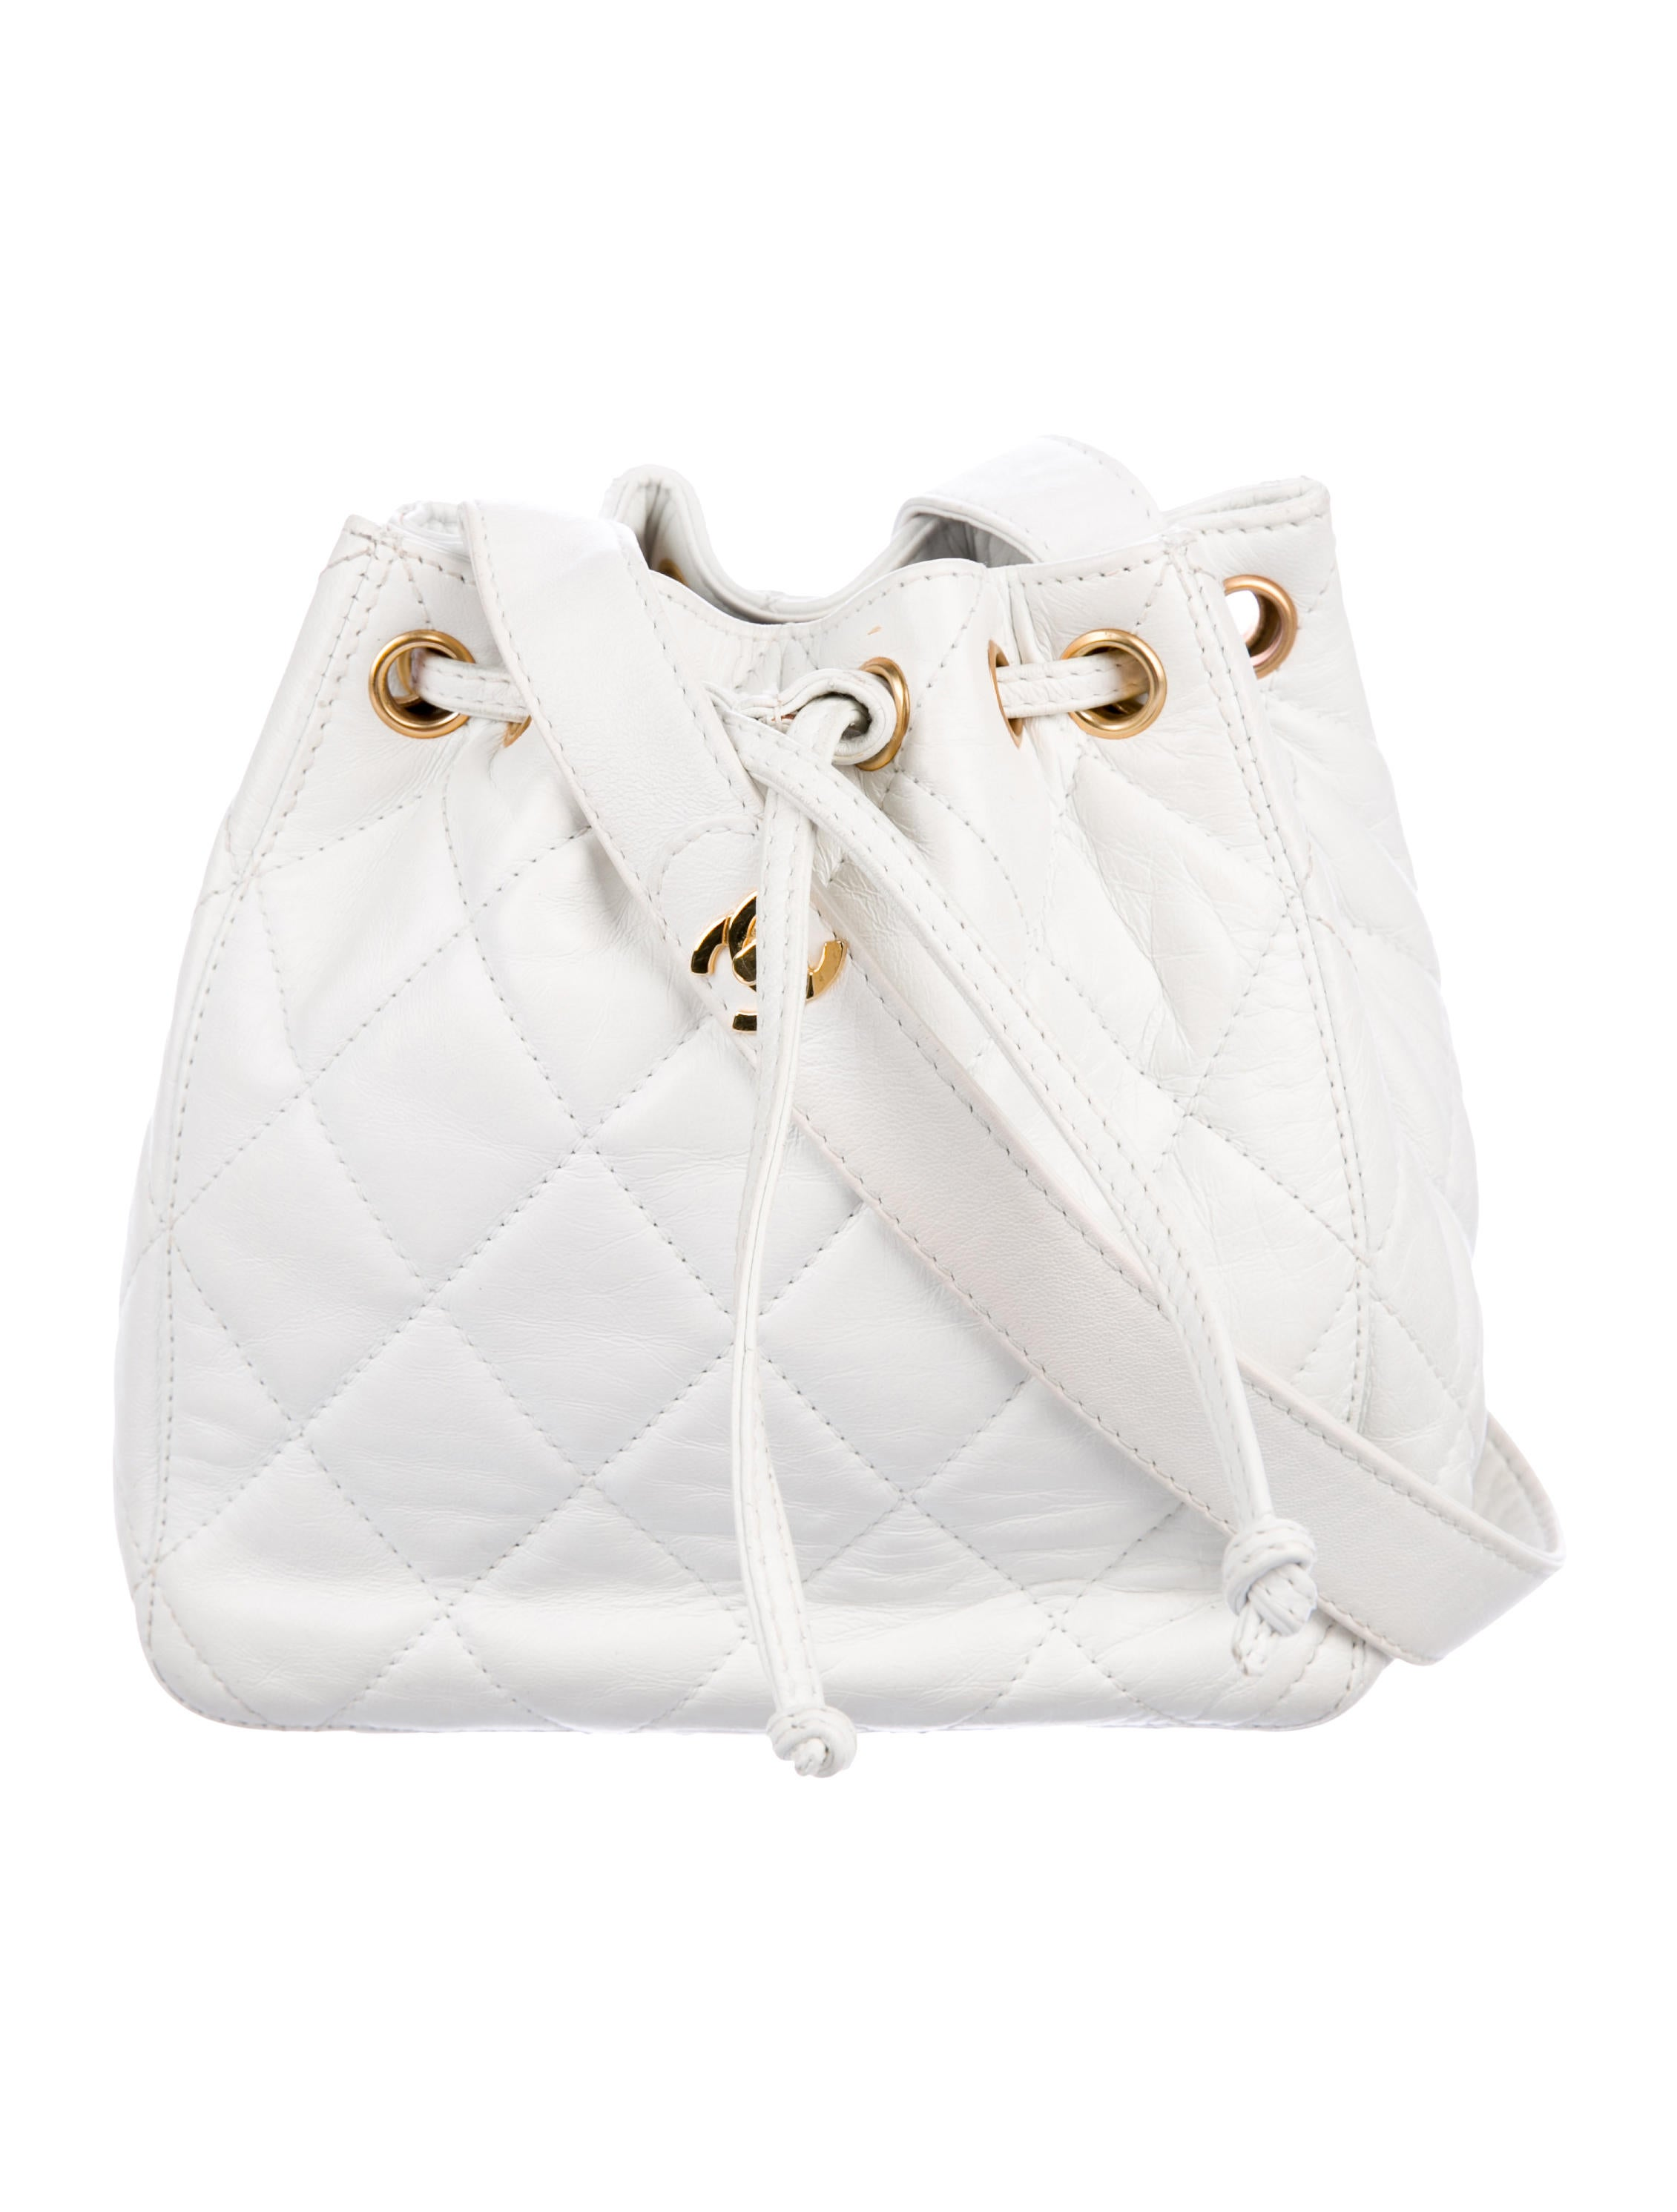 39c802bf7c1b0 Chanel Vintage Quilted Lambskin Drawstring Bag - Handbags ...